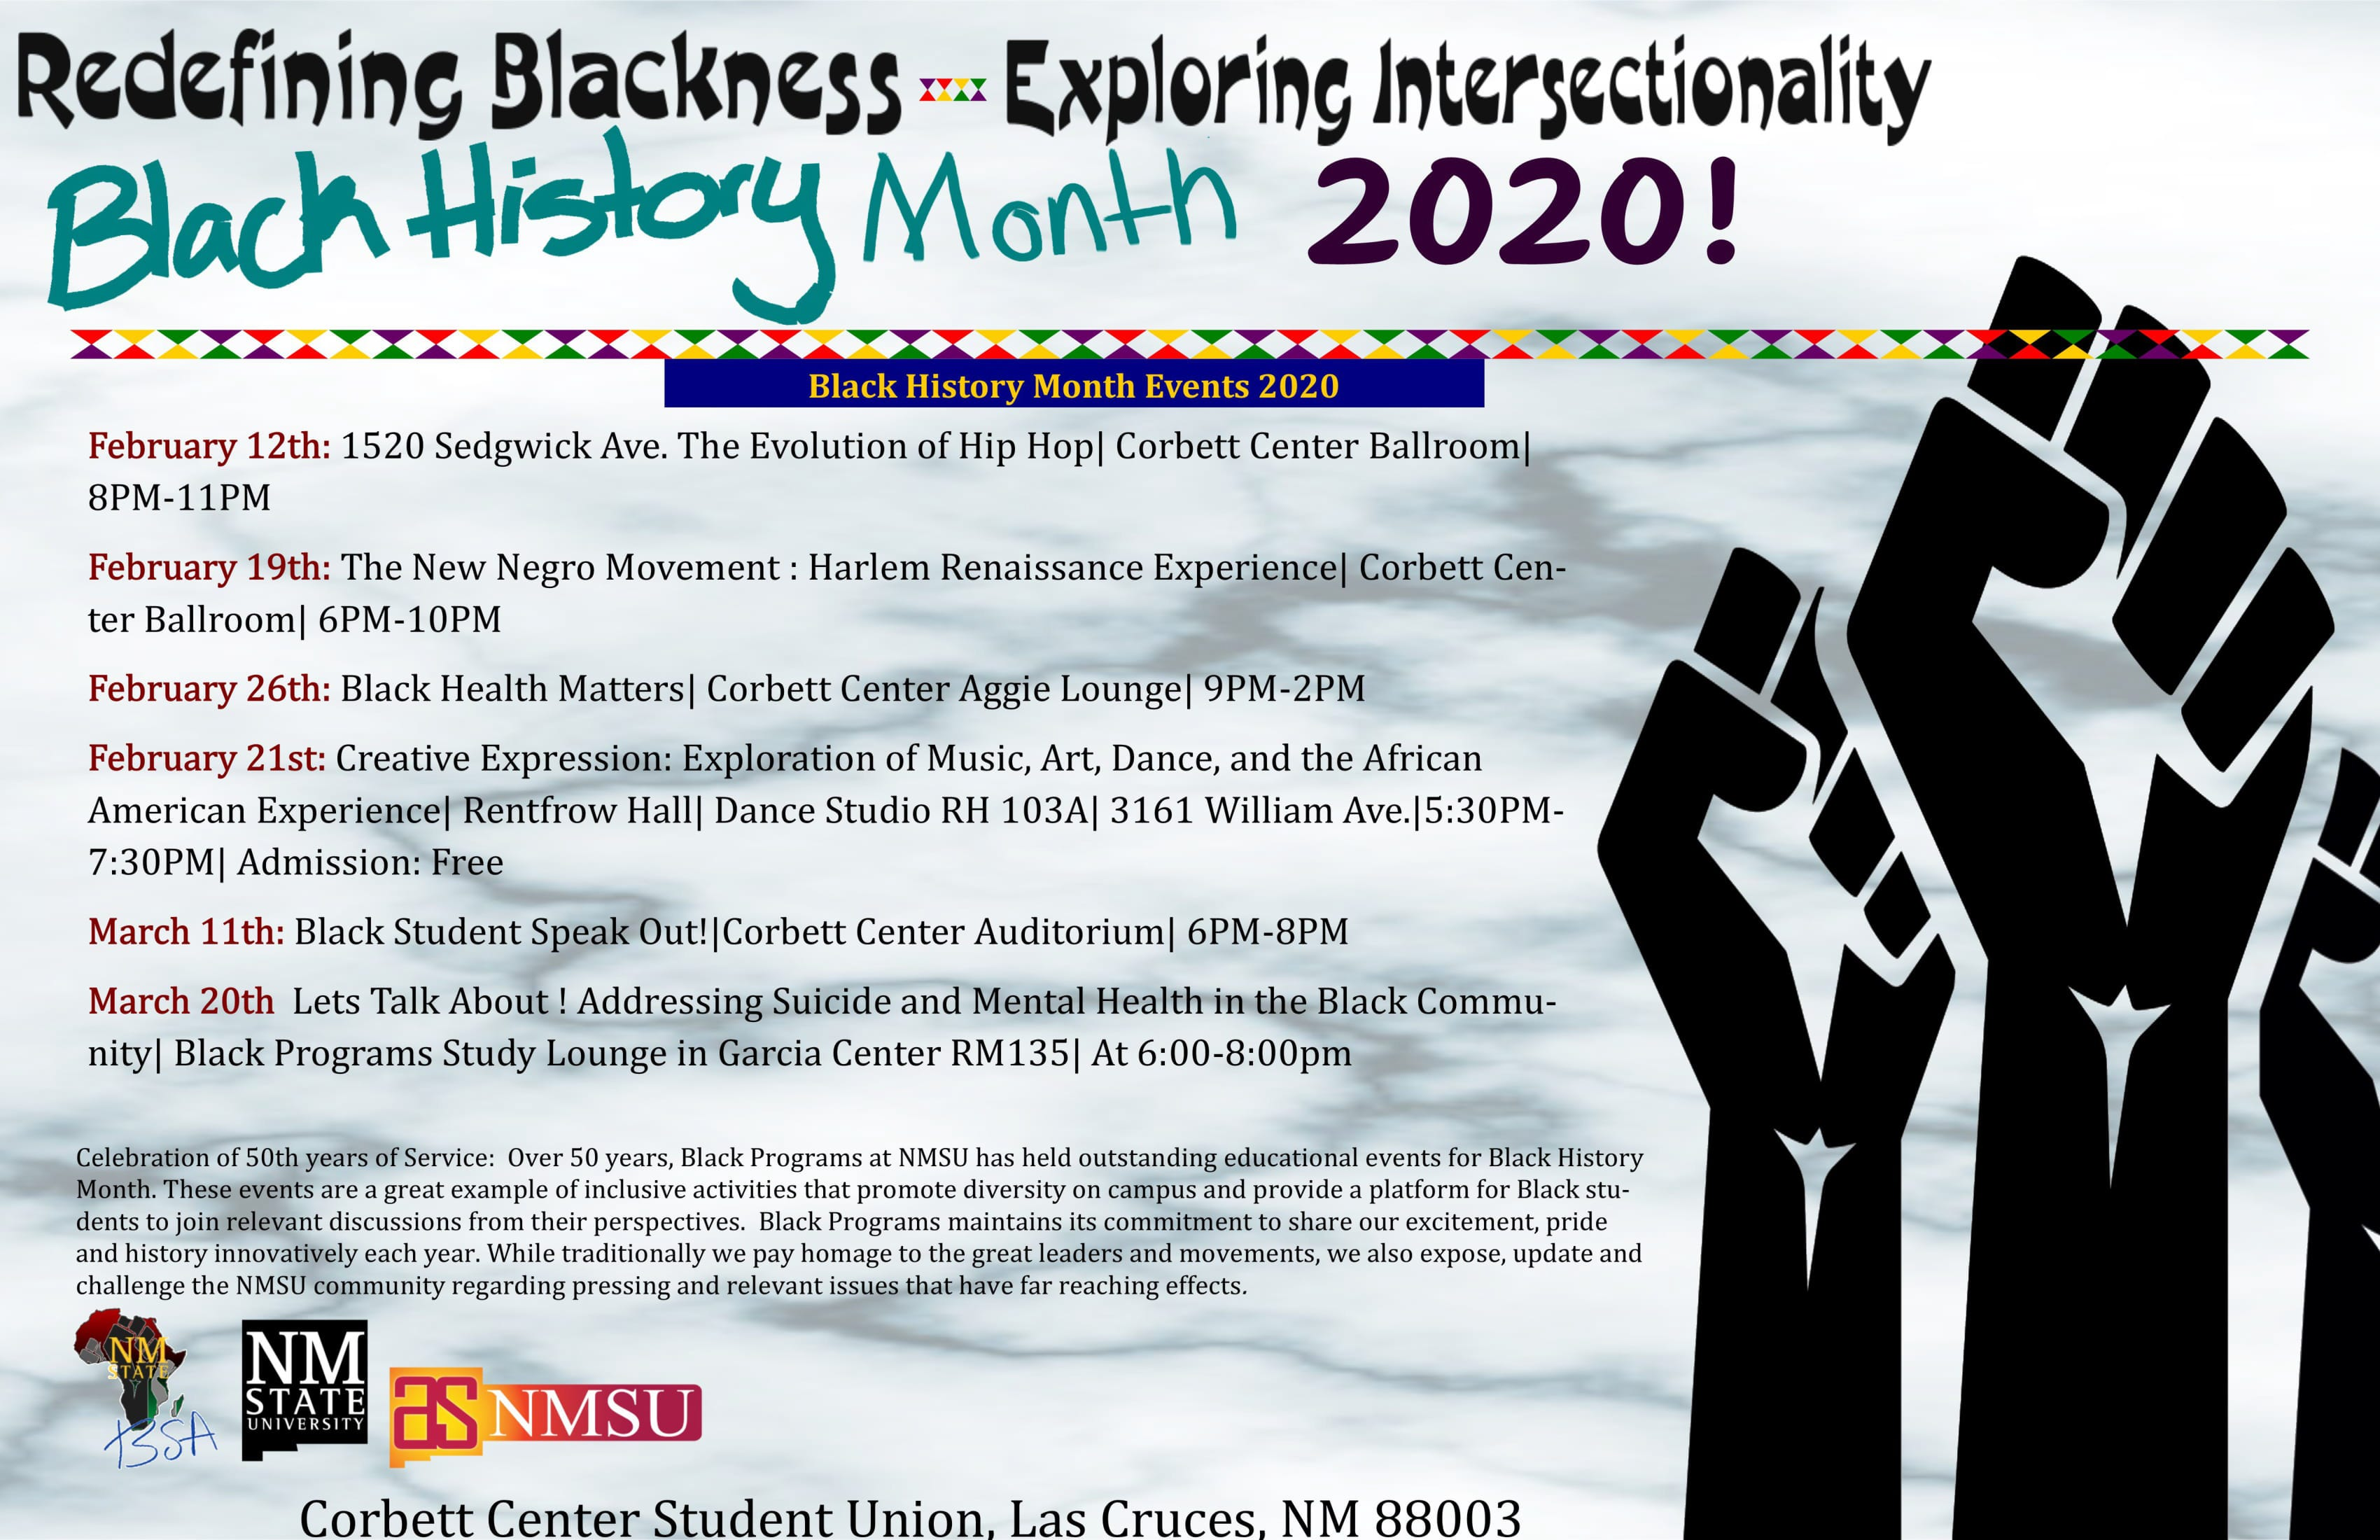 New Mexico State University Notes Black History Month Through March